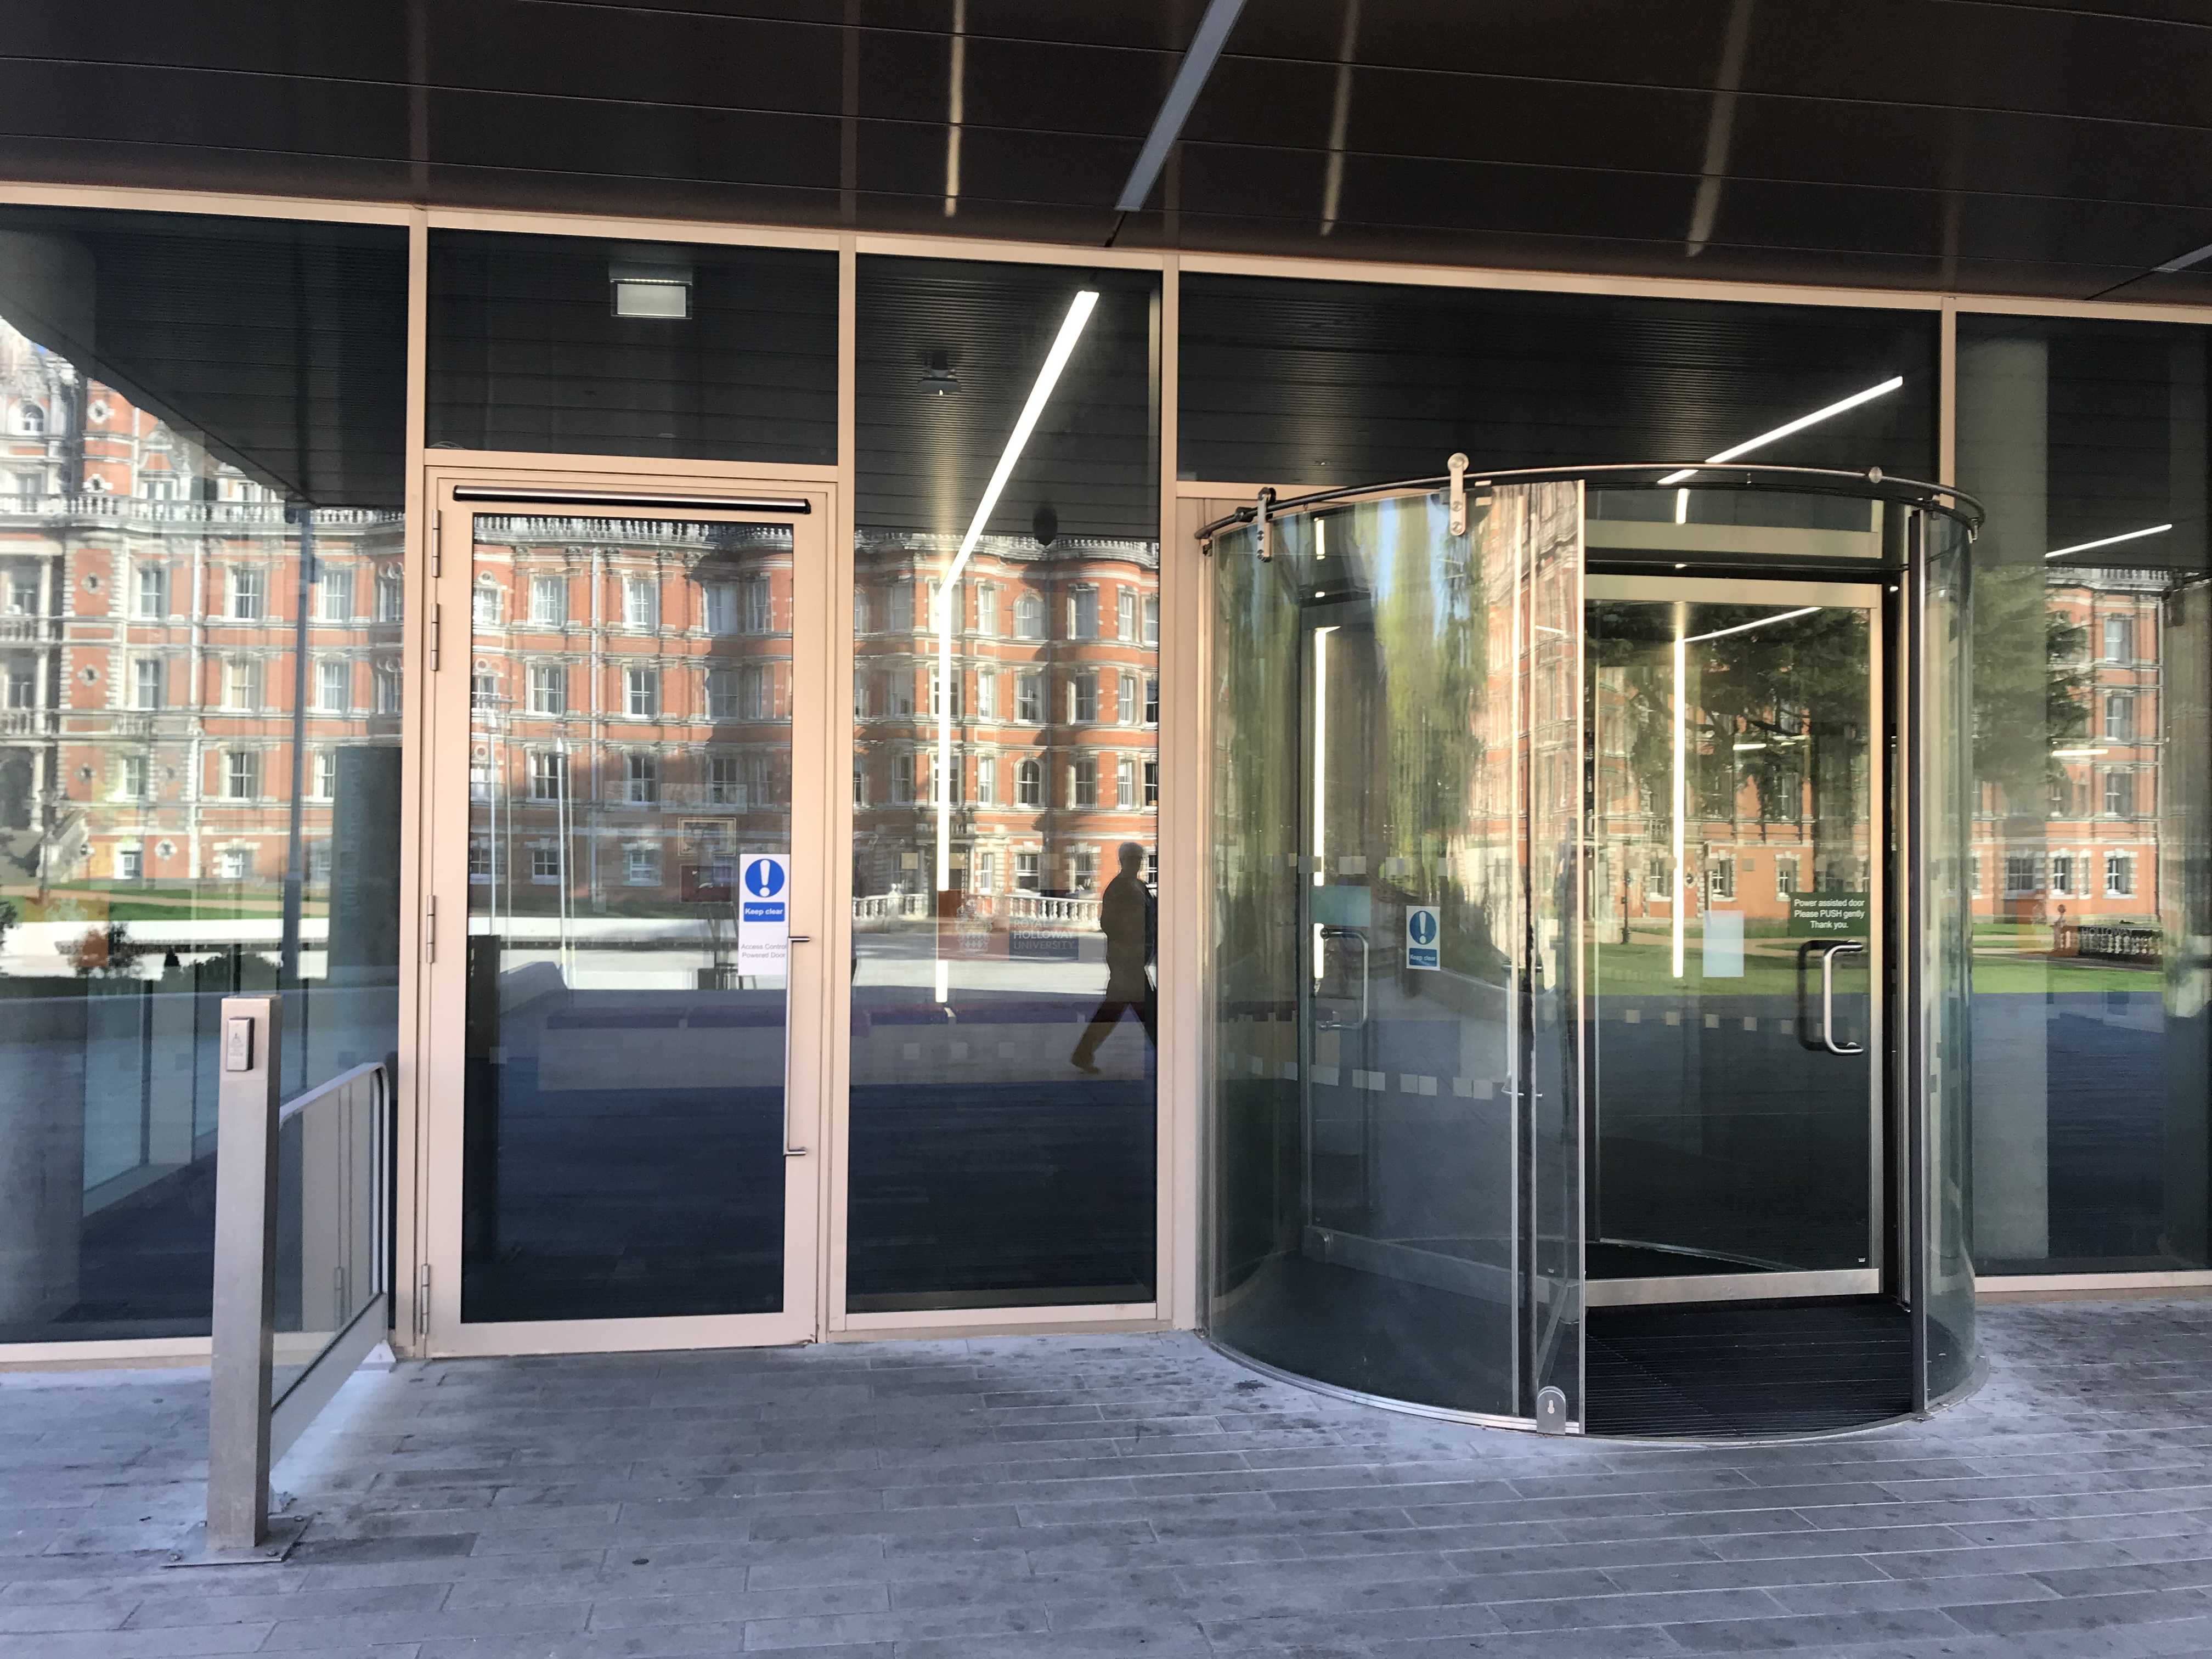 Close up image of the accessible doors at the main building entrance